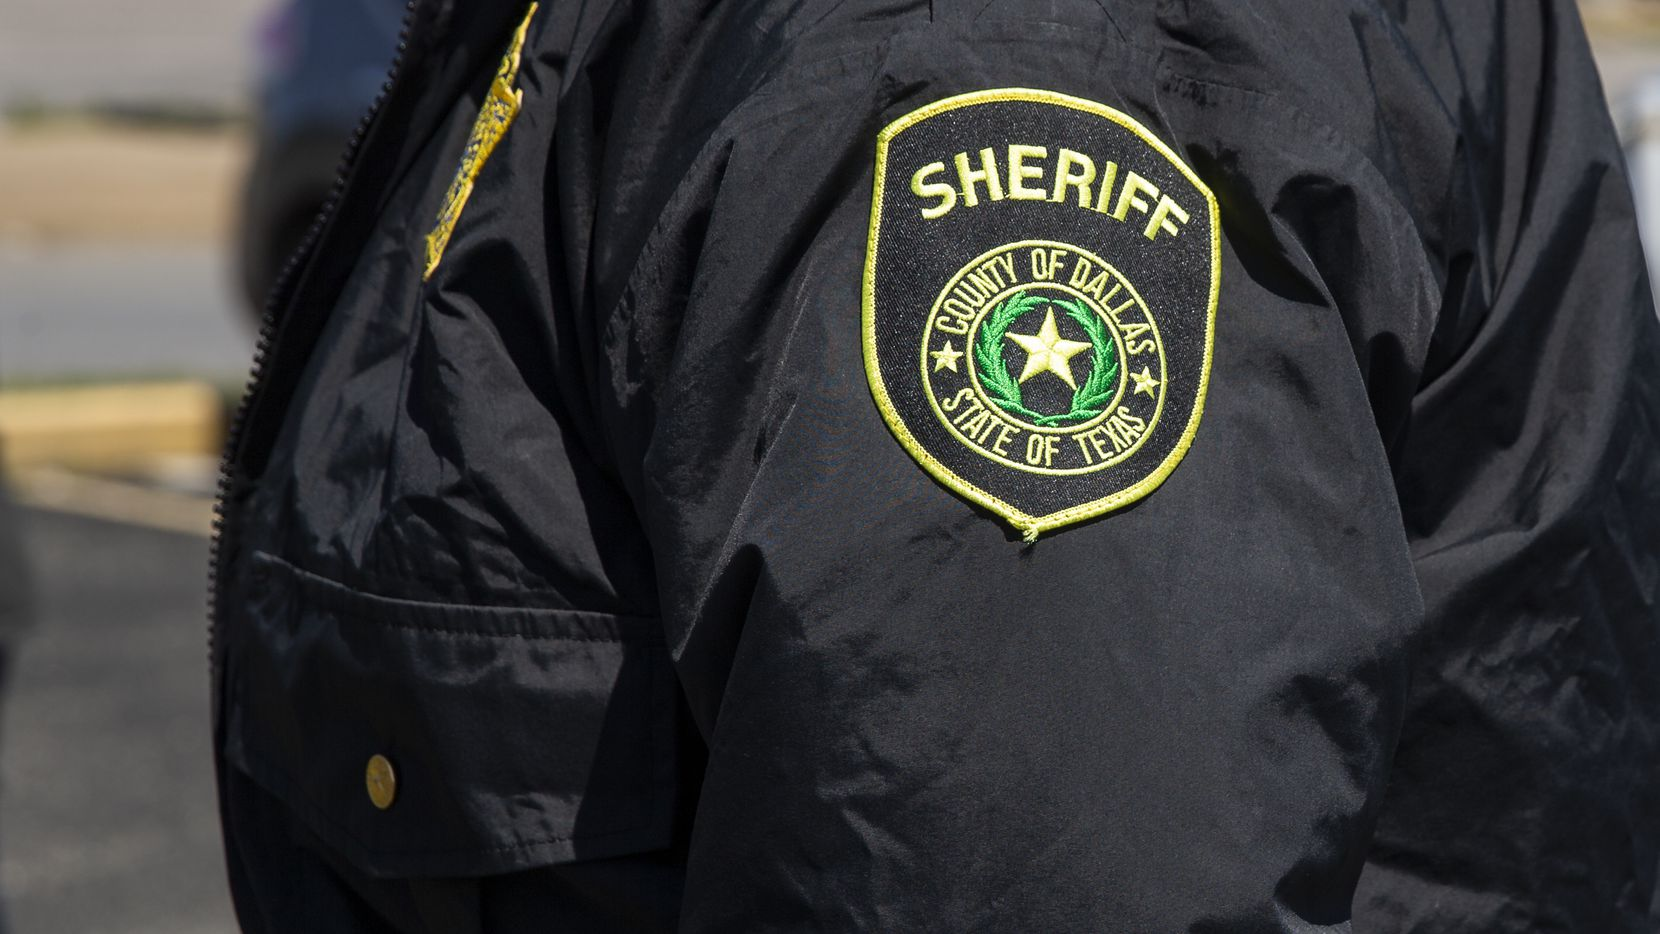 The sheriff badge on a detention officers jacket on April 13, 2020 in Dallas.